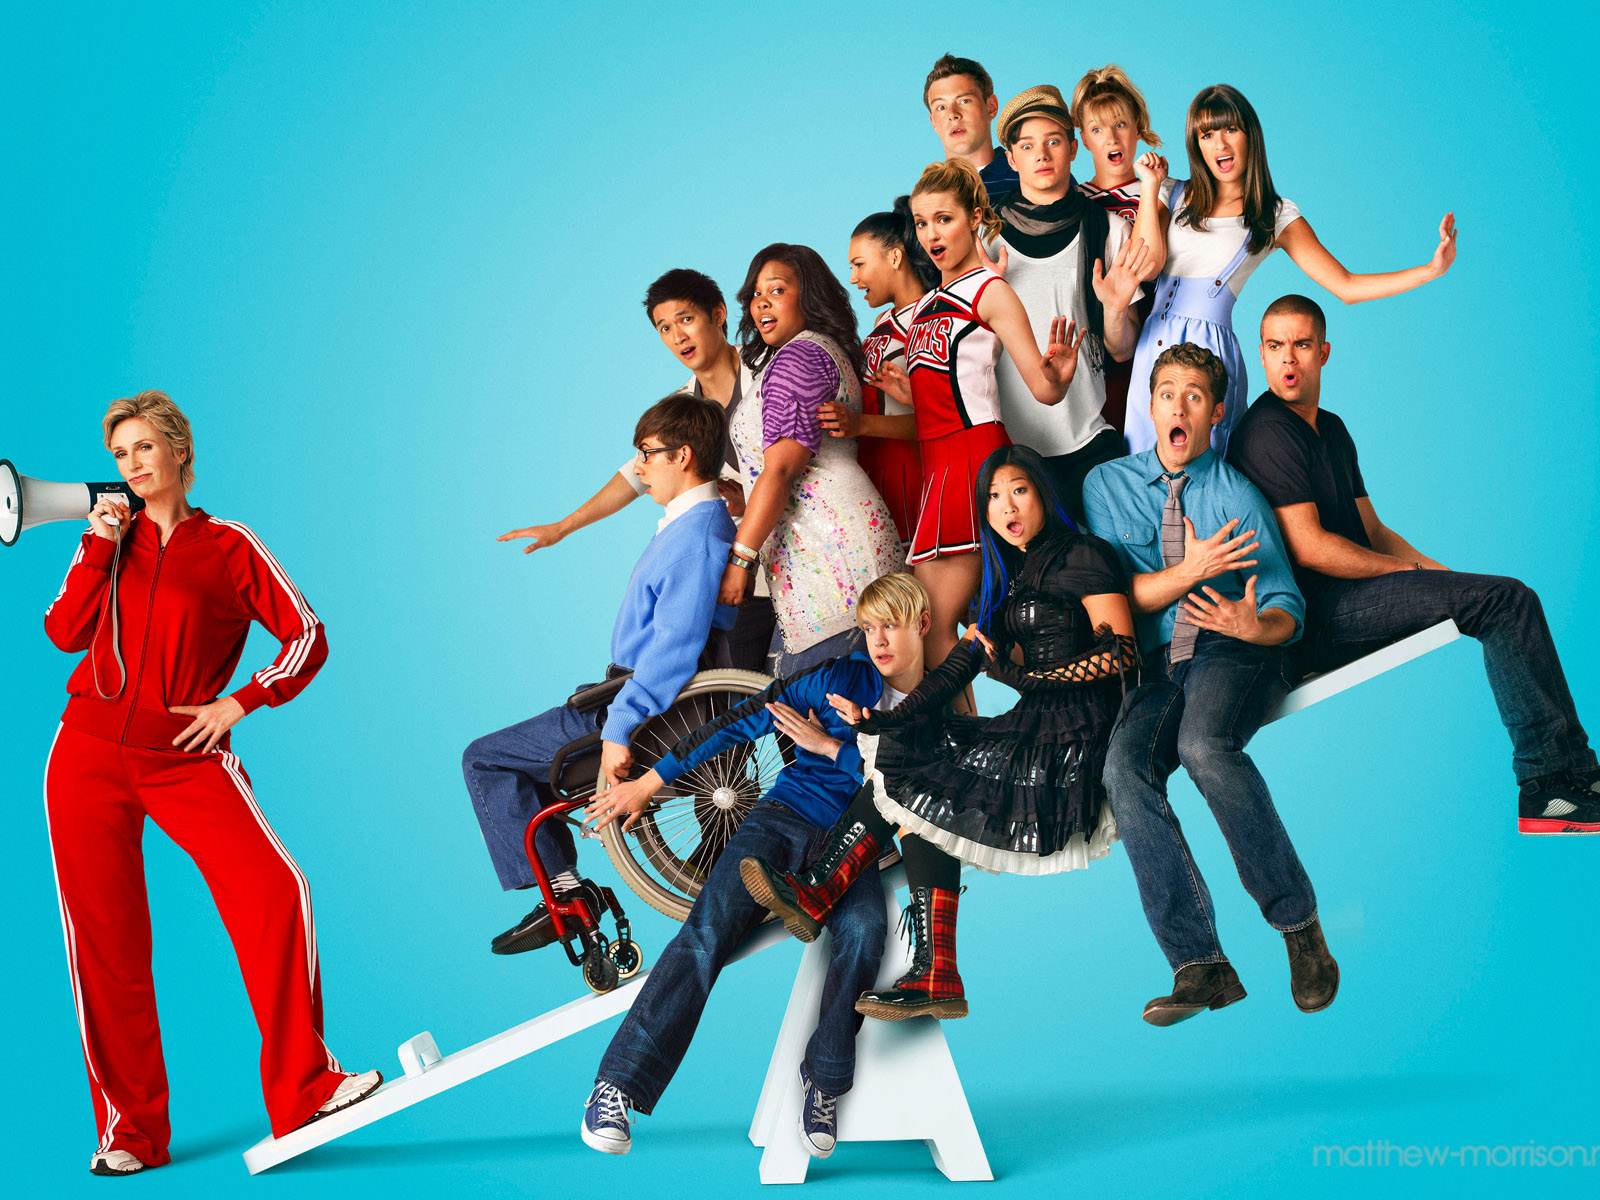 Glee Wallpaper 1600x1200 Wallpapers 1600x1200 Wallpapers Pictures 1600x1200